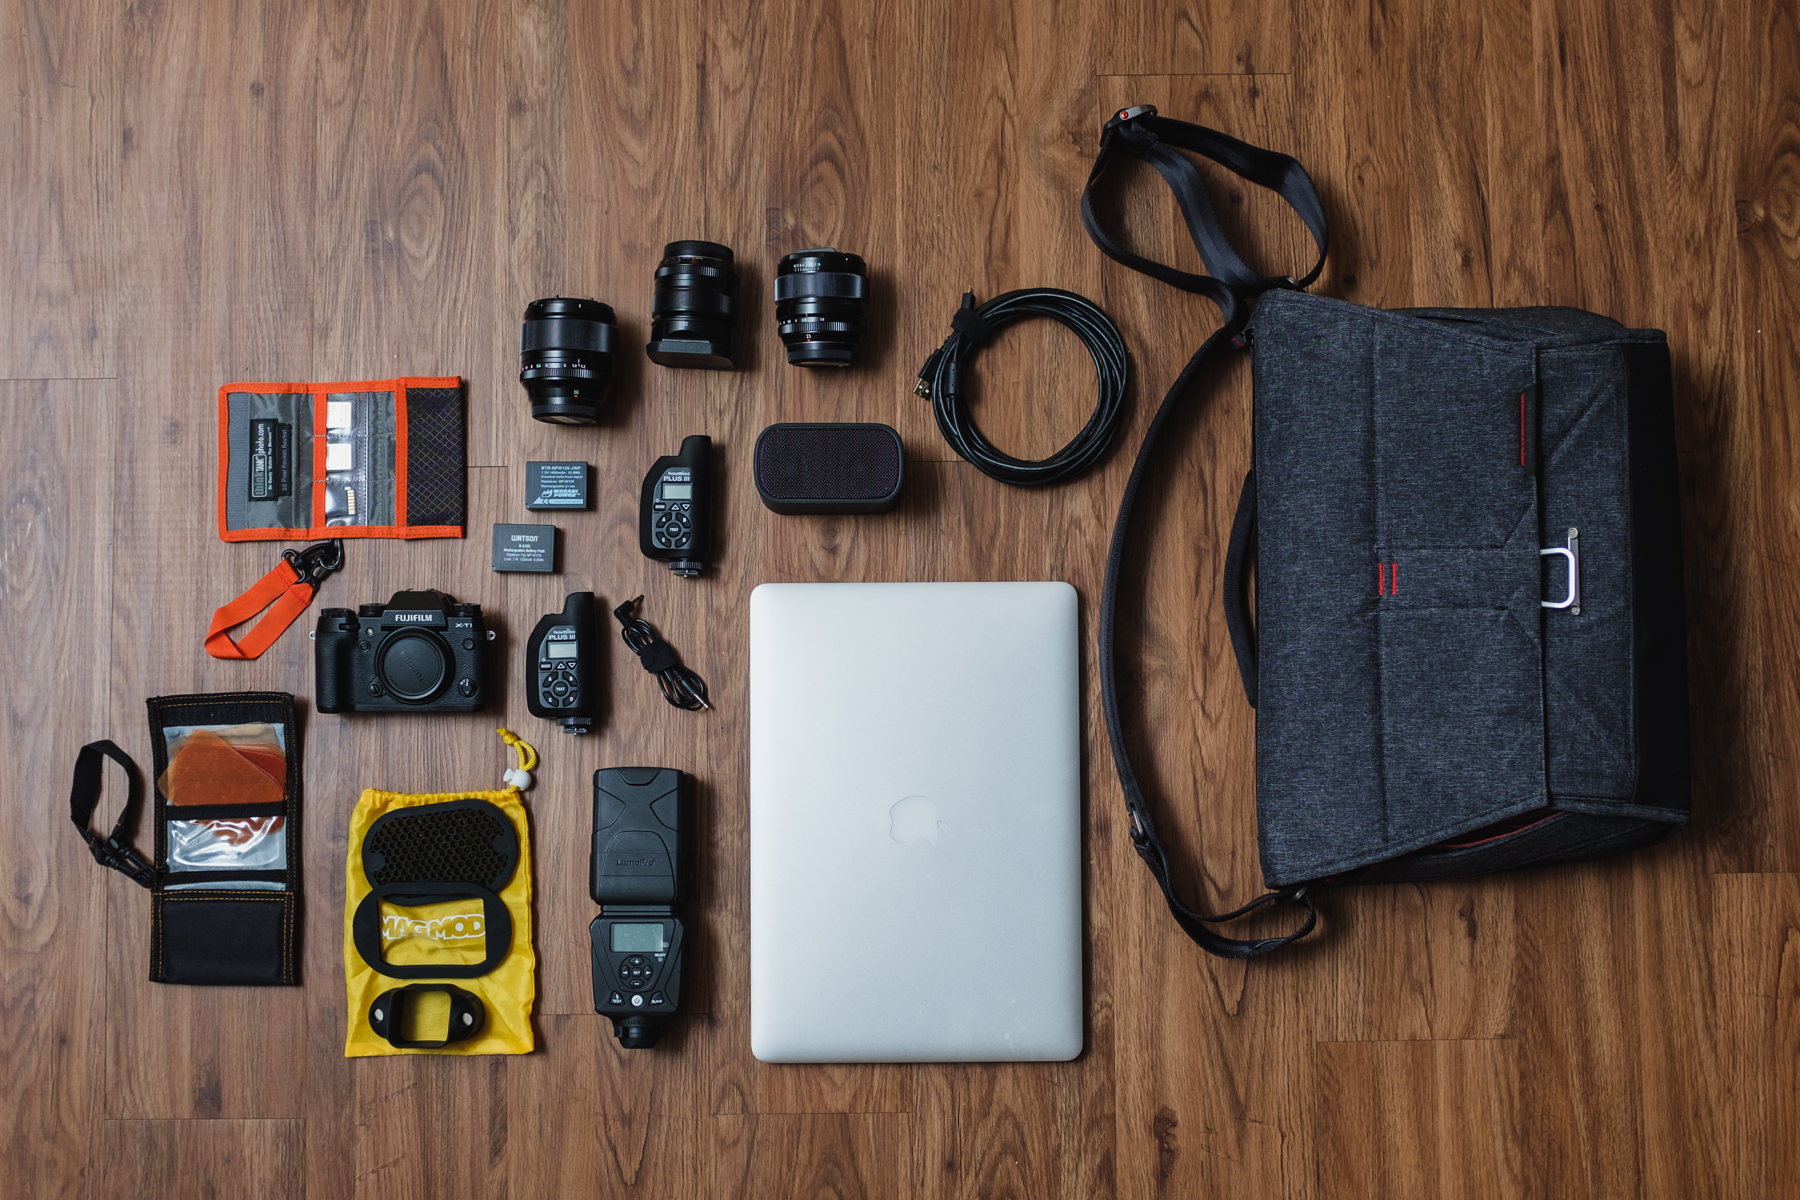 "Quick shoot setup ""I don't have an assistant and need a quick shoot bag"" - This loads up the bag very tightly.  Think Tank Photo SD Pixel Pocket Rocket  ,   SD Cards,  Fujifilm X-T1 Camera,  Fujifilm NP-W126 Batteries, Fujifilm 56mm, 35mm, & 23mm Lenses, 2x  PocketWizard Plus III Transceiver, Sync cord, MagMod Gel Kit, MagMod Basic Kit (Grid, Gel Slot, & MagGrip), Lumopro LP-180 Flash, UE Bluetooth Speaker, USB Tethering Cable, and  Apple Macbook Pro 15"""